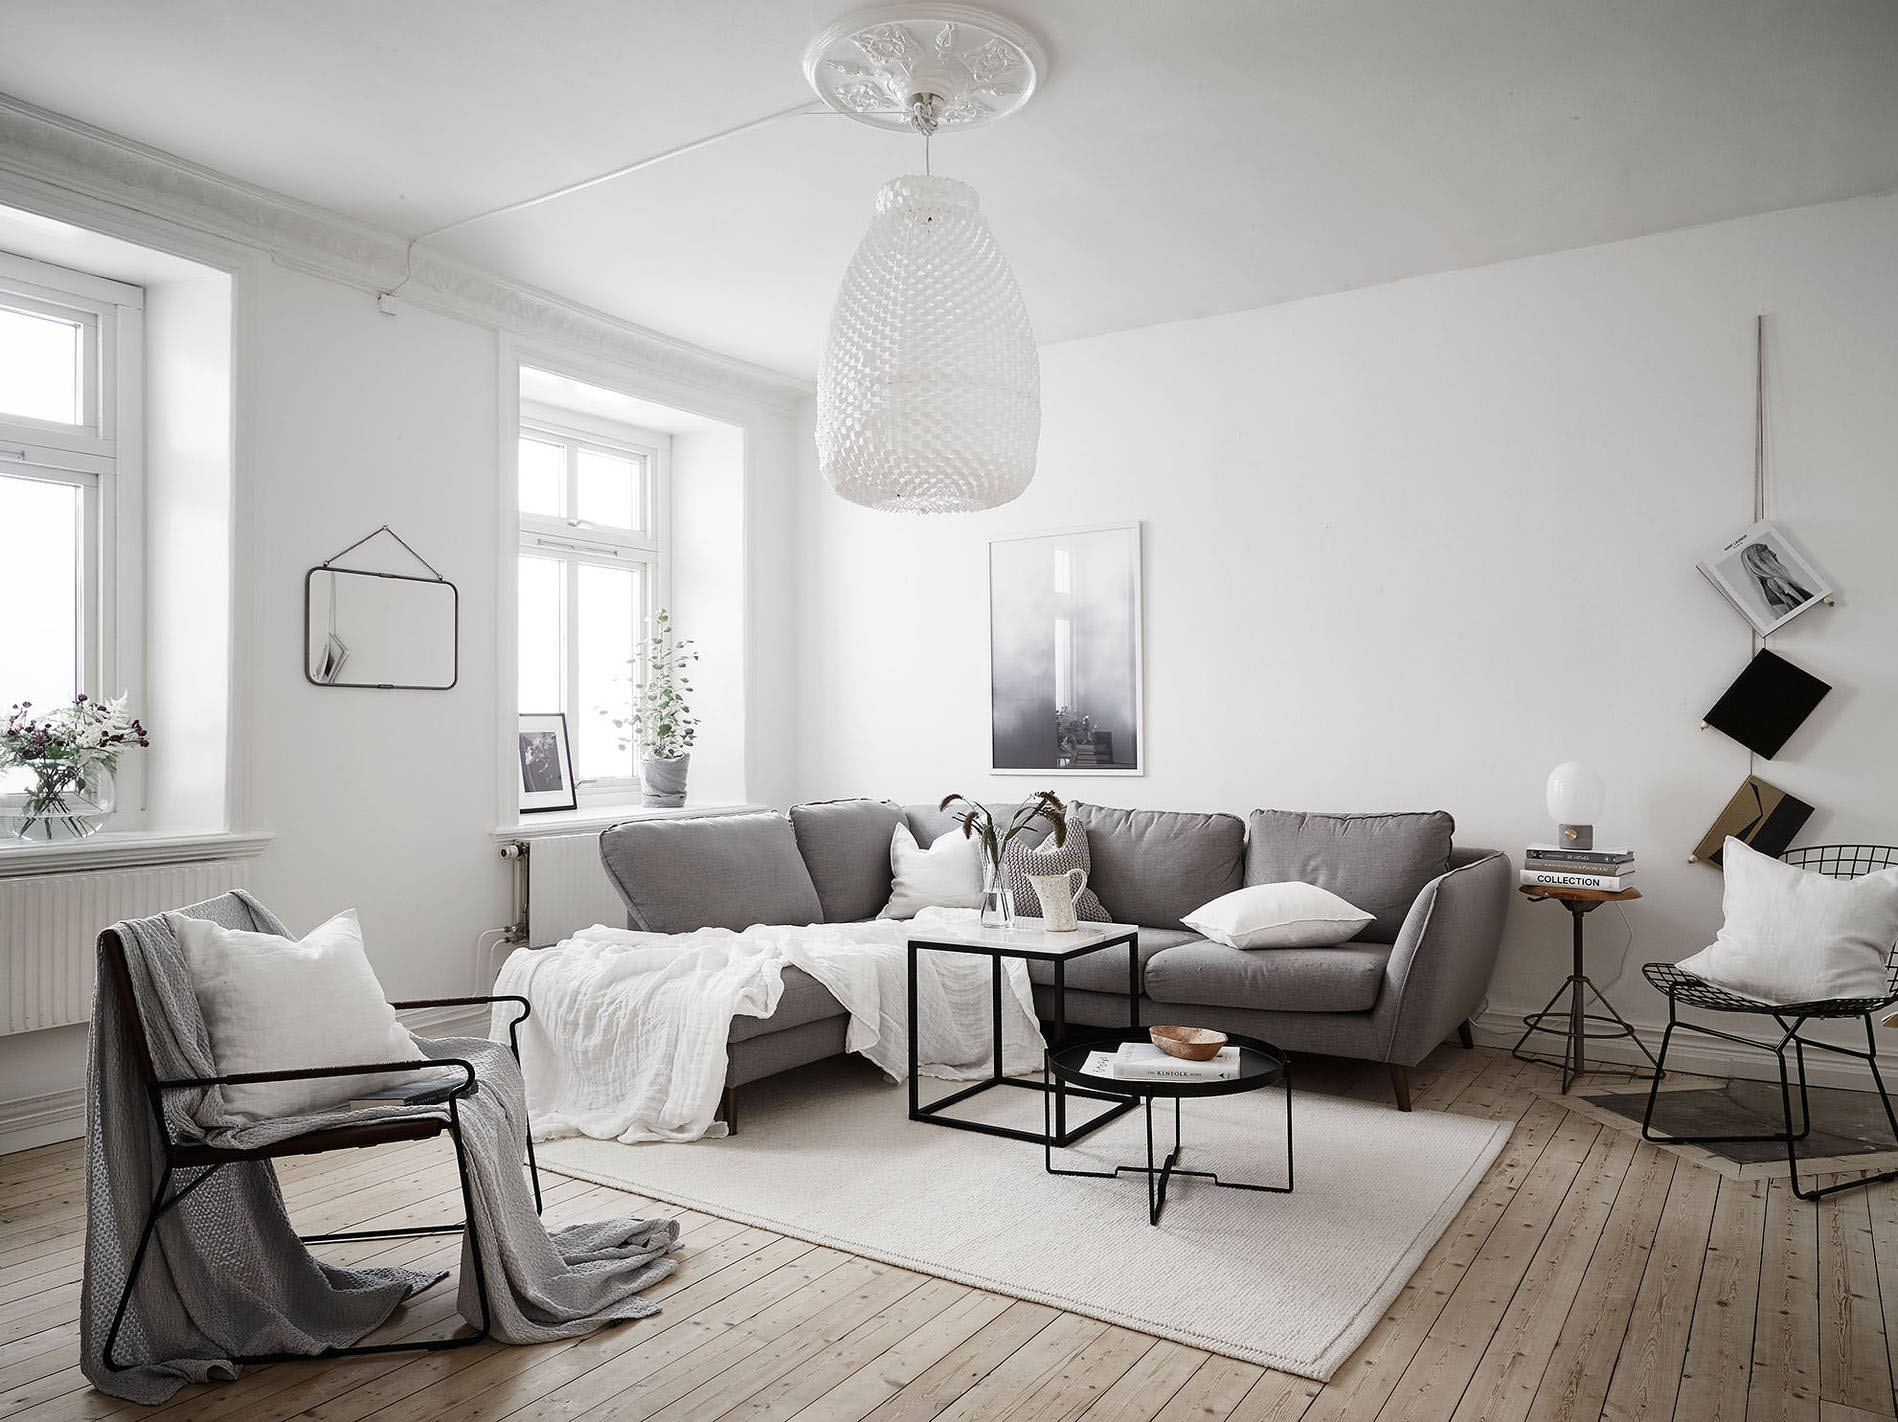 top 10 tips for adding scandinavian style to your home happy greyscandinavian living room with large pendant lamp top 10 tips for adding scandinavian style to